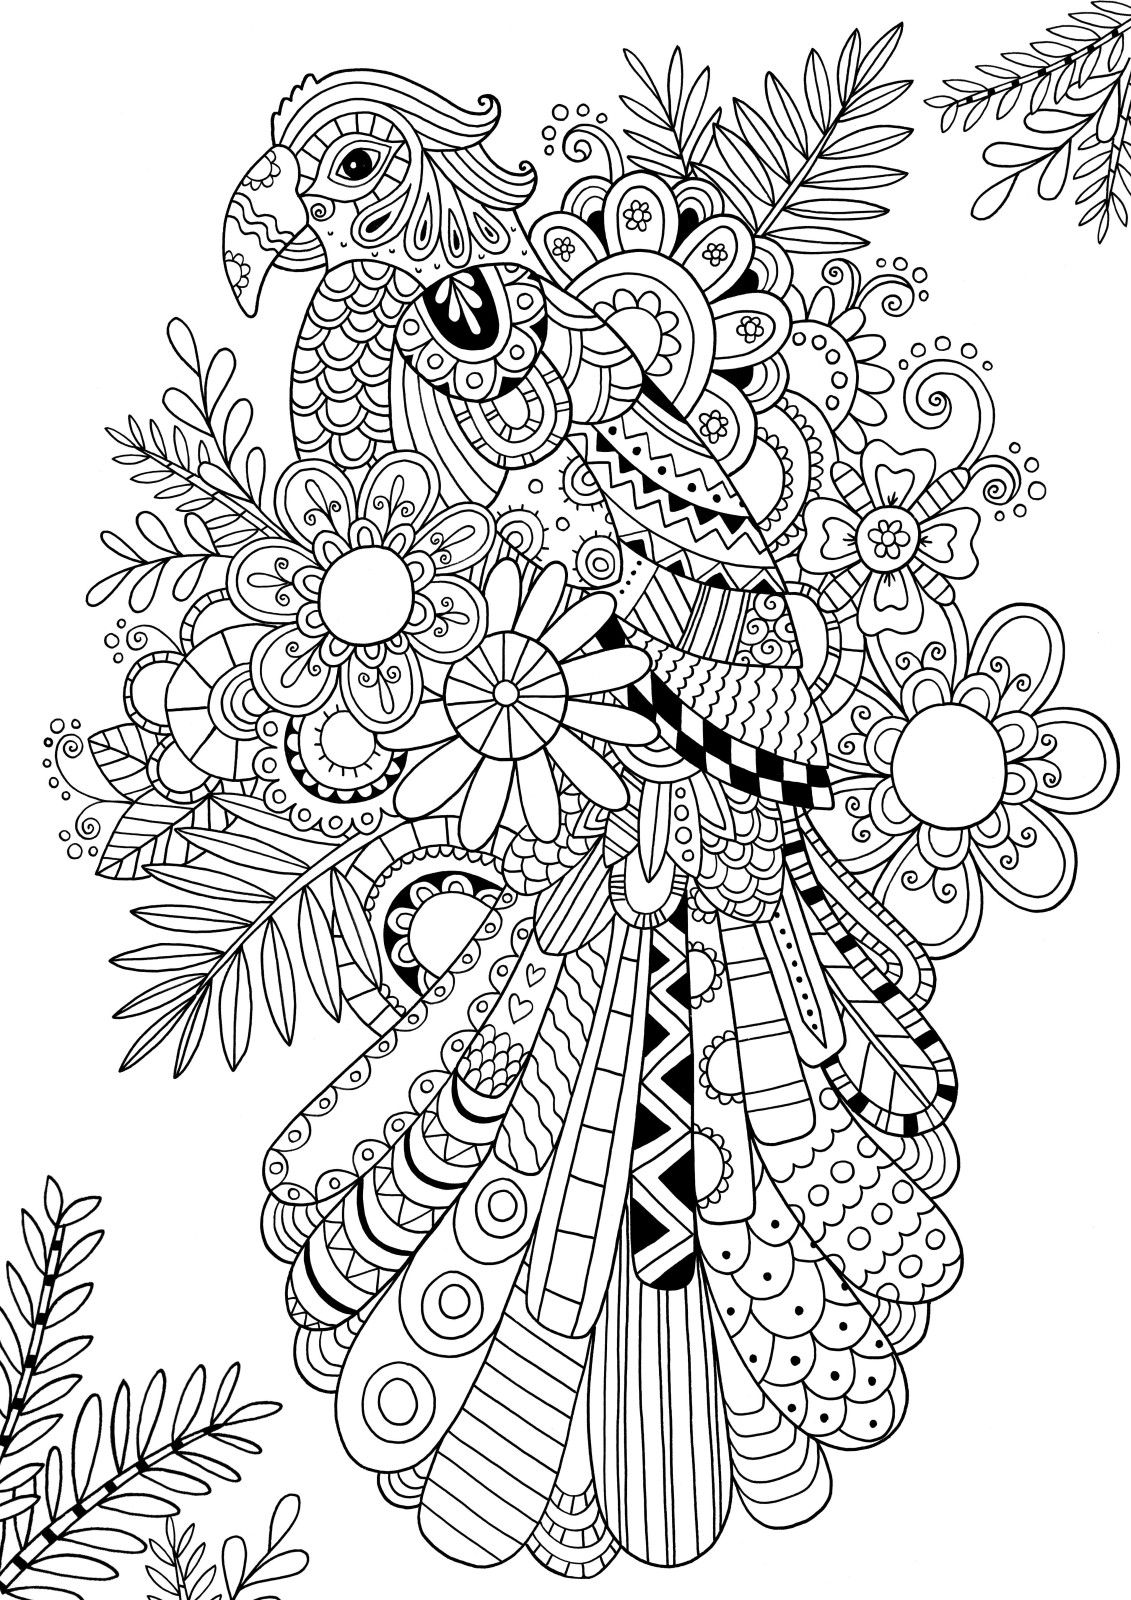 how to draw zentangle patterns adult coloring pagescoloring